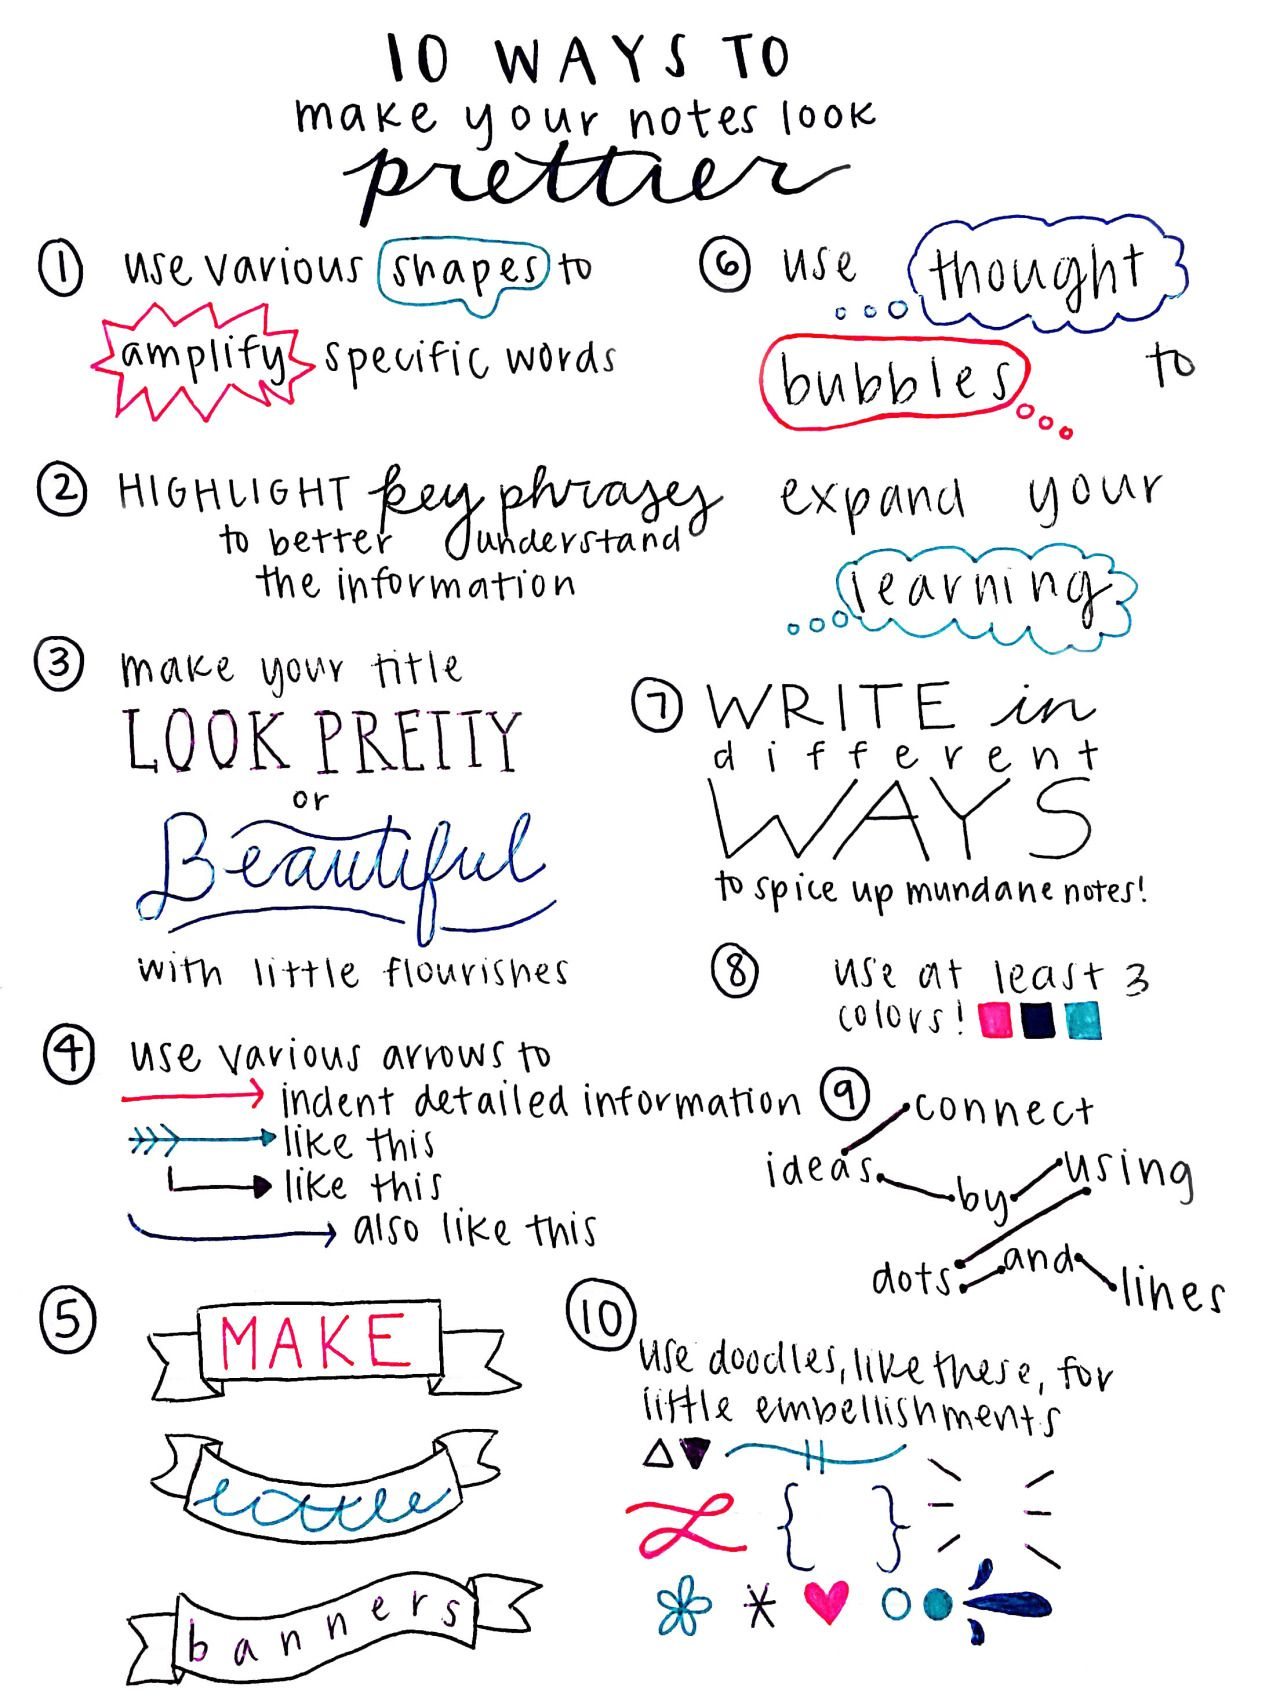 Colourfulstudy Studywithpaigey 10 Ways To Make Your Notes Look Prettier A Helpful List